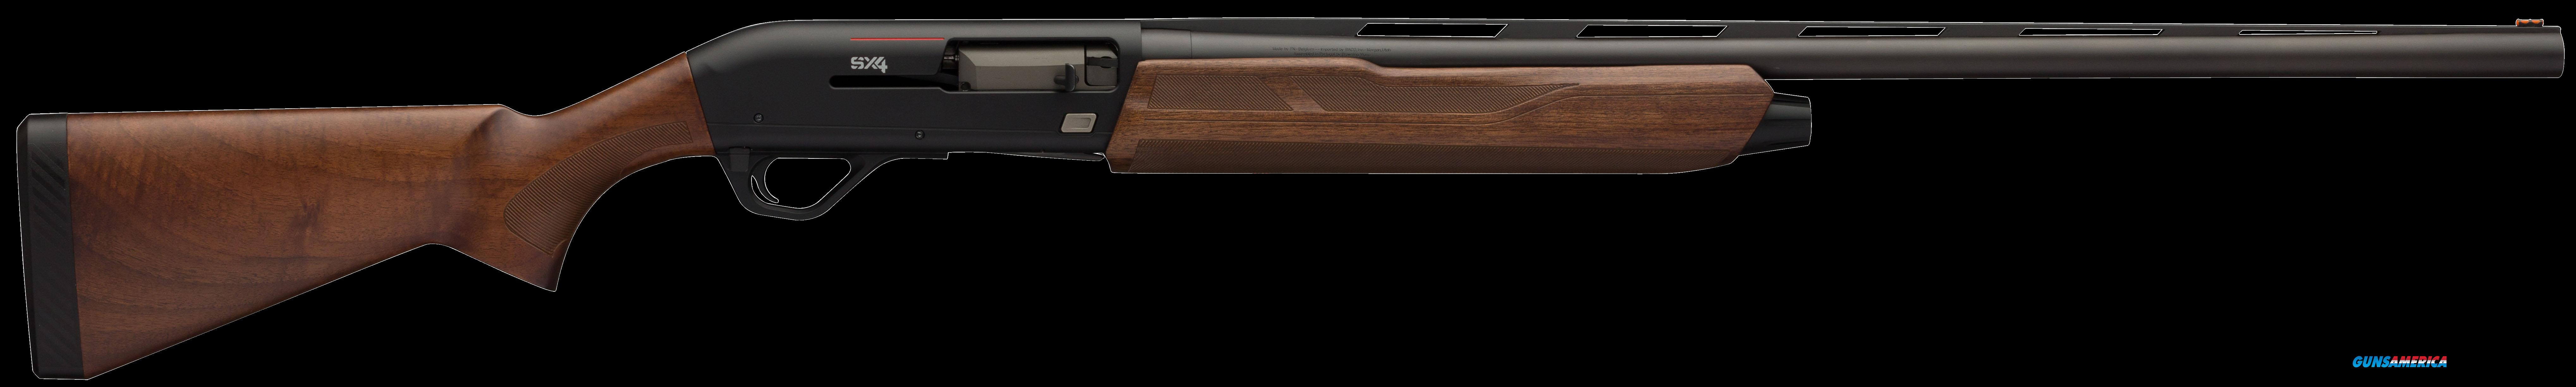 "Winchester Guns 511210391 SX4 Semi-Automatic 12 Gauge 26"" 3"" Turkish Walnut Stk Black Aluminum Alloy  Guns > Shotguns > W Misc Shotguns"